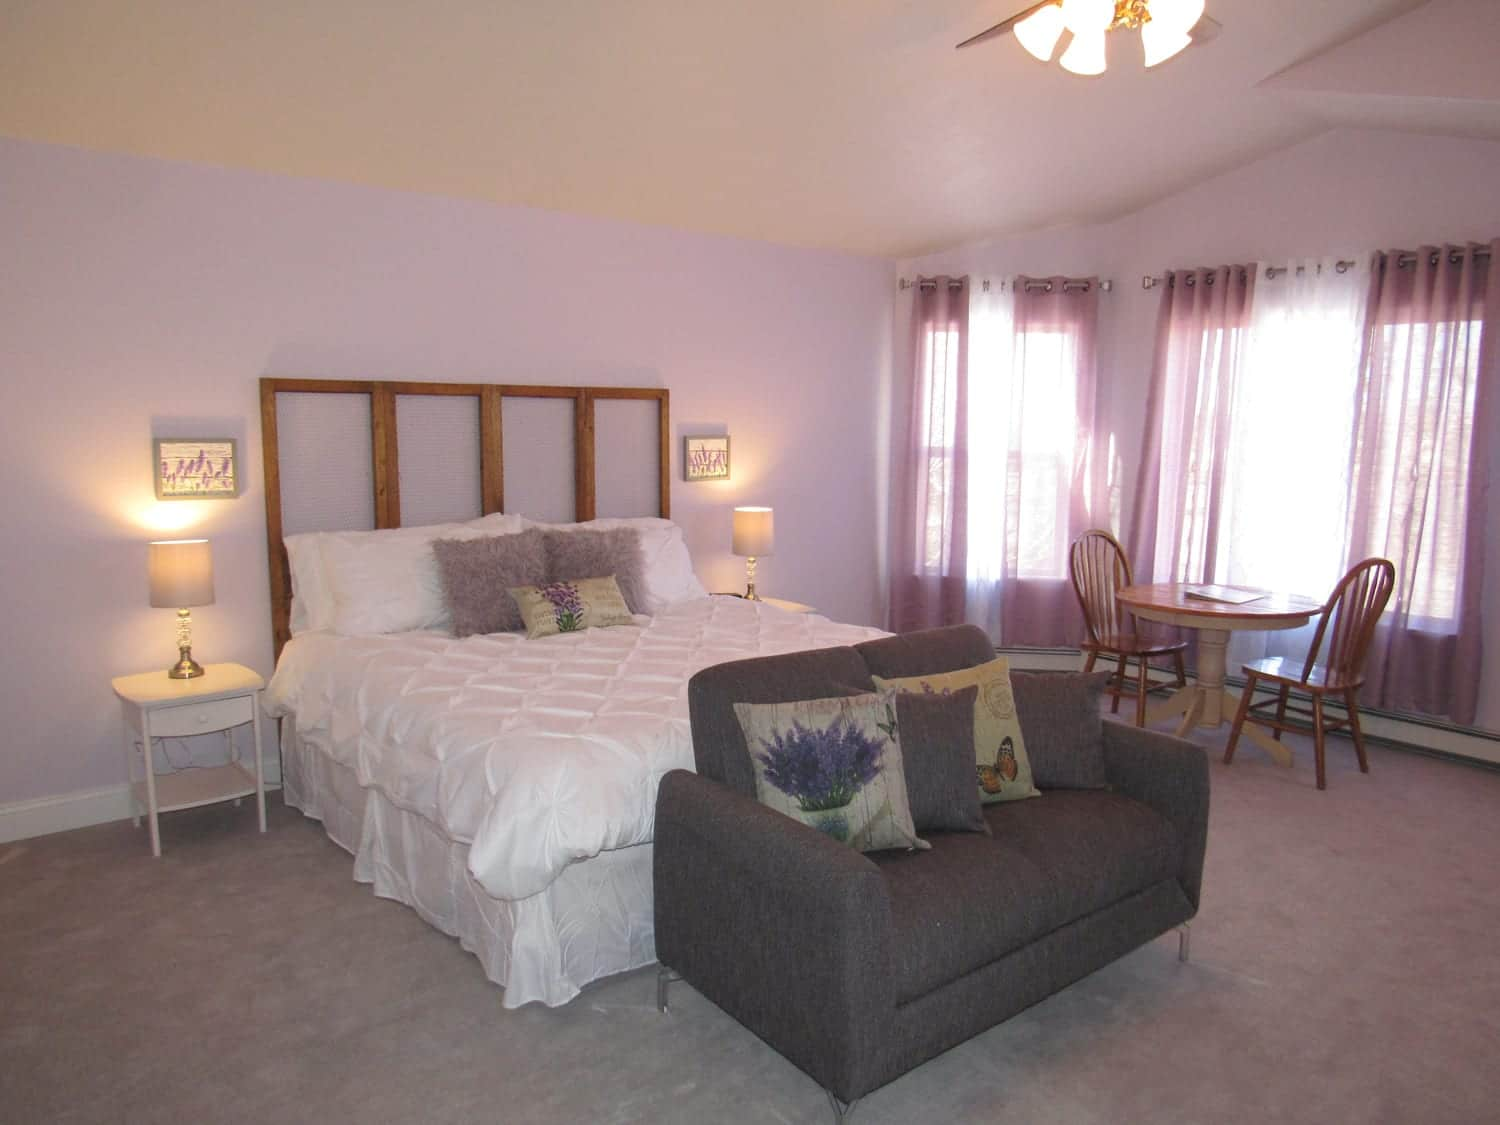 image of room at castle creek manor